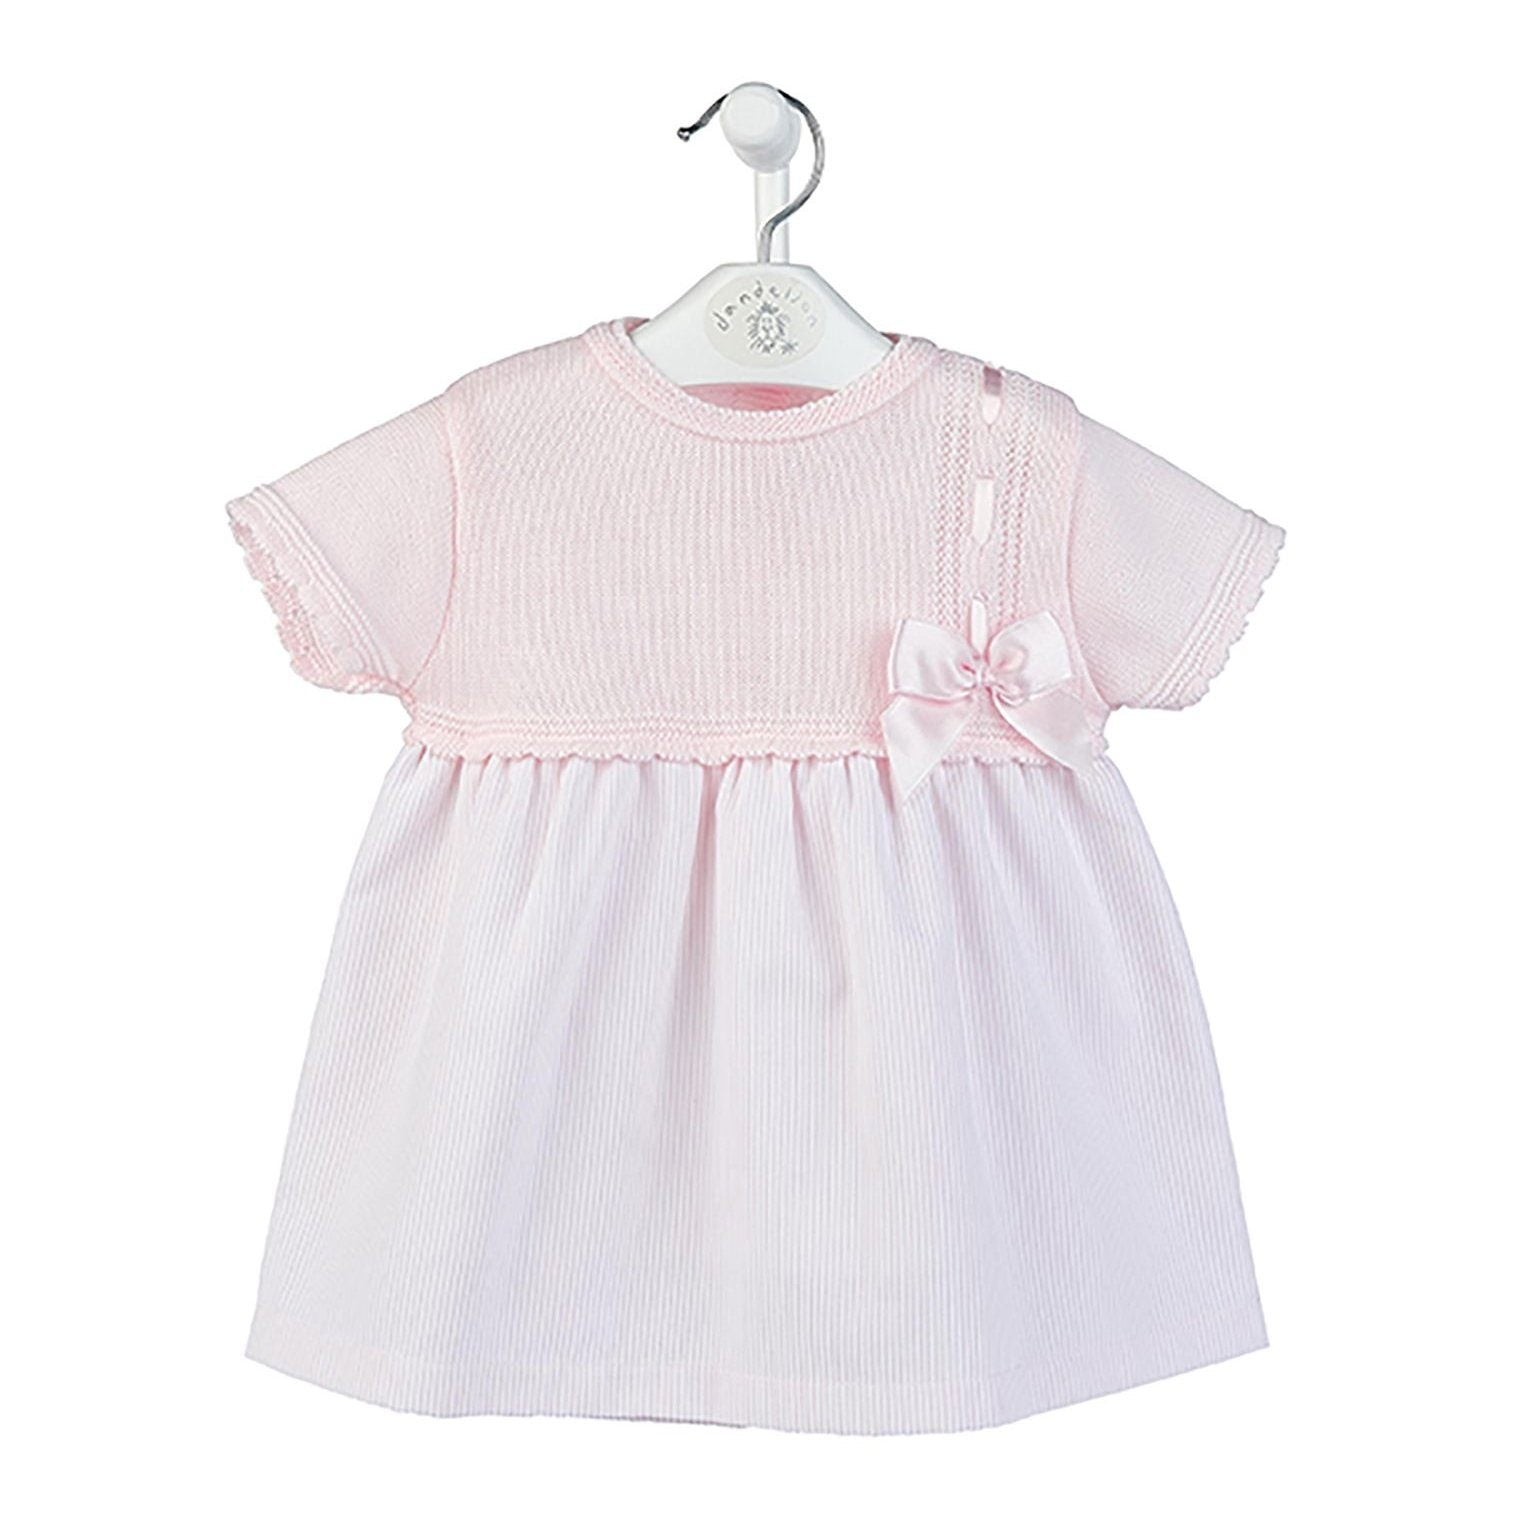 Dandelion Pink Half Knit Bow Dress | Millie and John